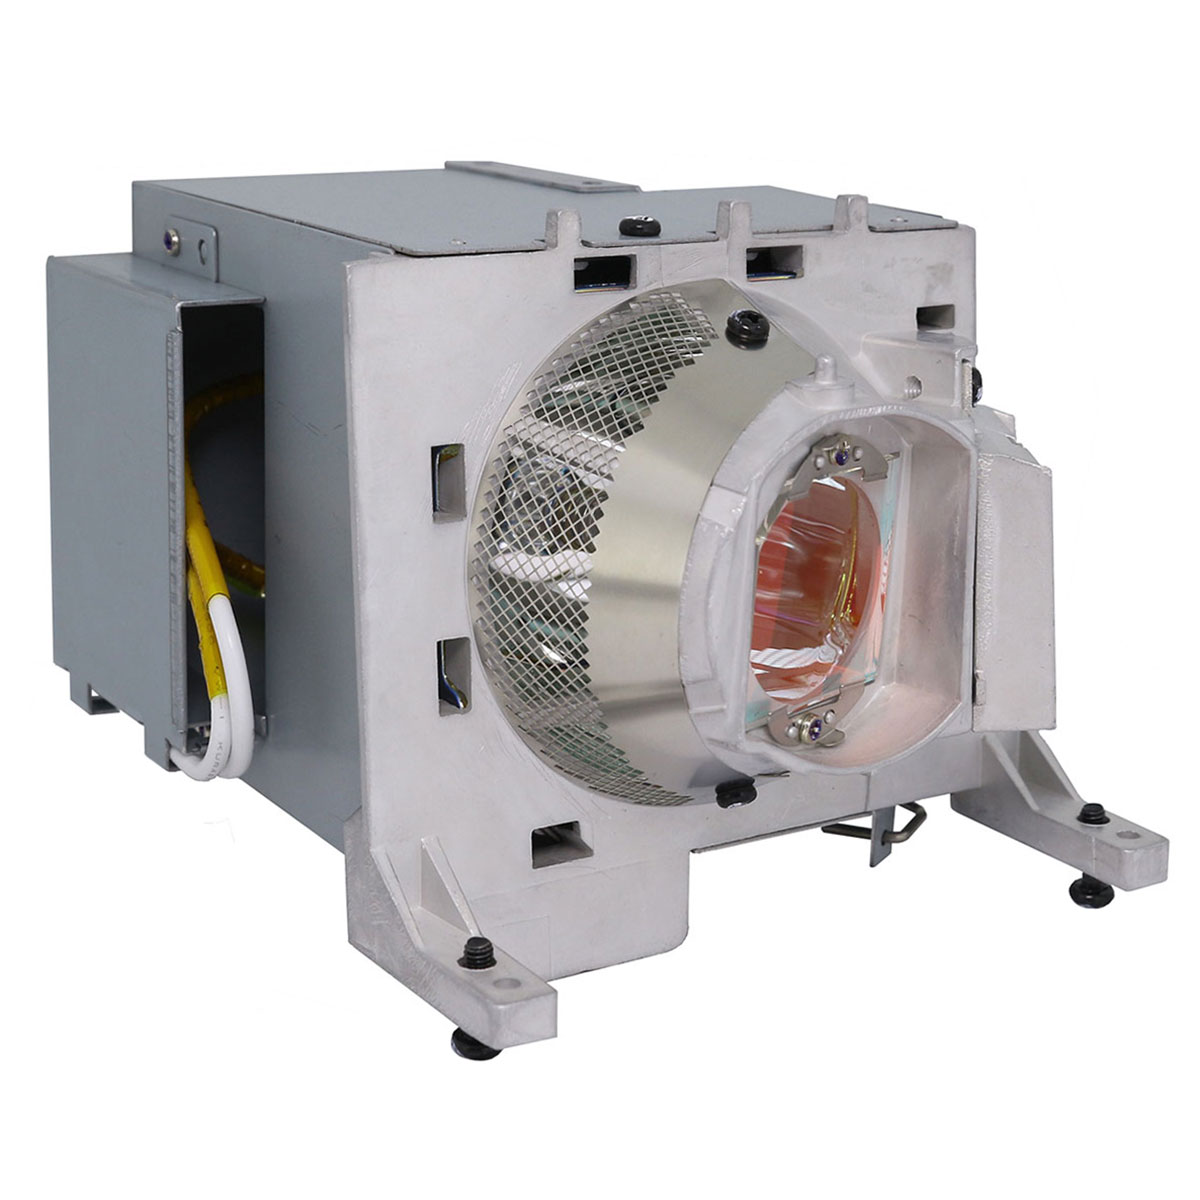 Original Philips Projector Lamp Replacement with Housing for Optoma W515 - image 4 de 5